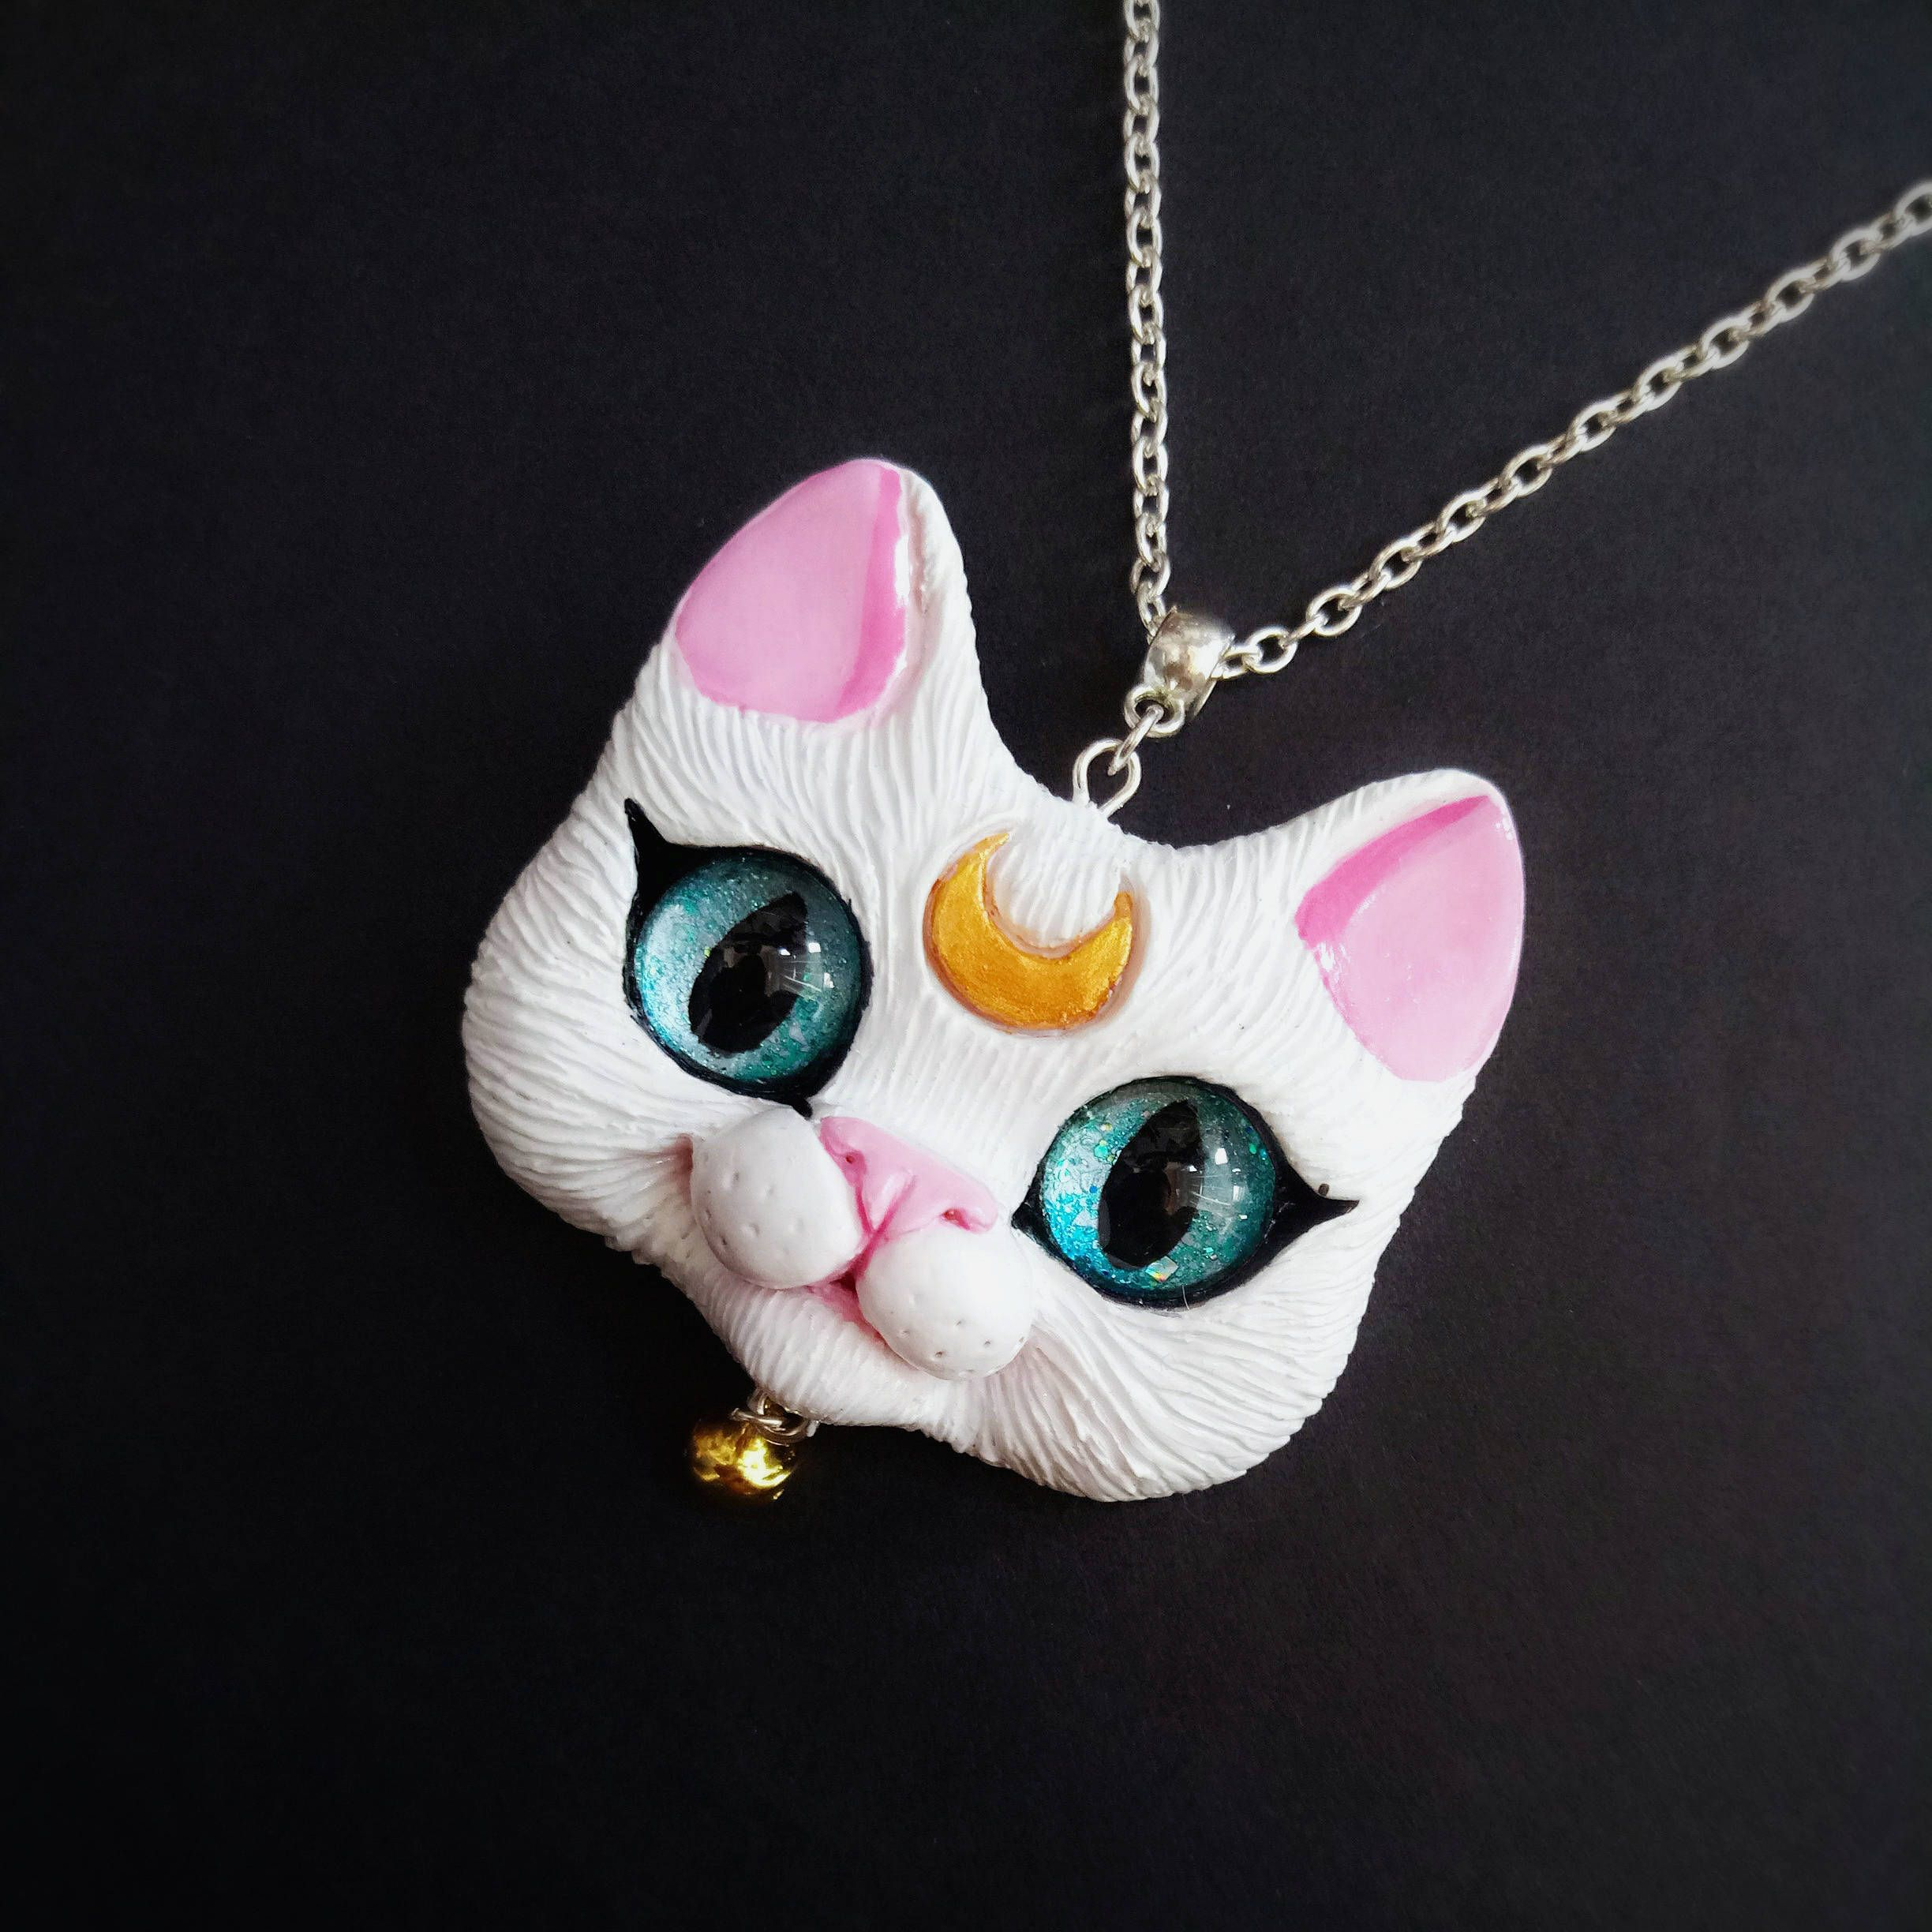 Custom order artemis sailor moon inspired necklace ooak custom order artemis sailor moon inspired necklace ooak polymer clay cat pendant mozeypictures Choice Image